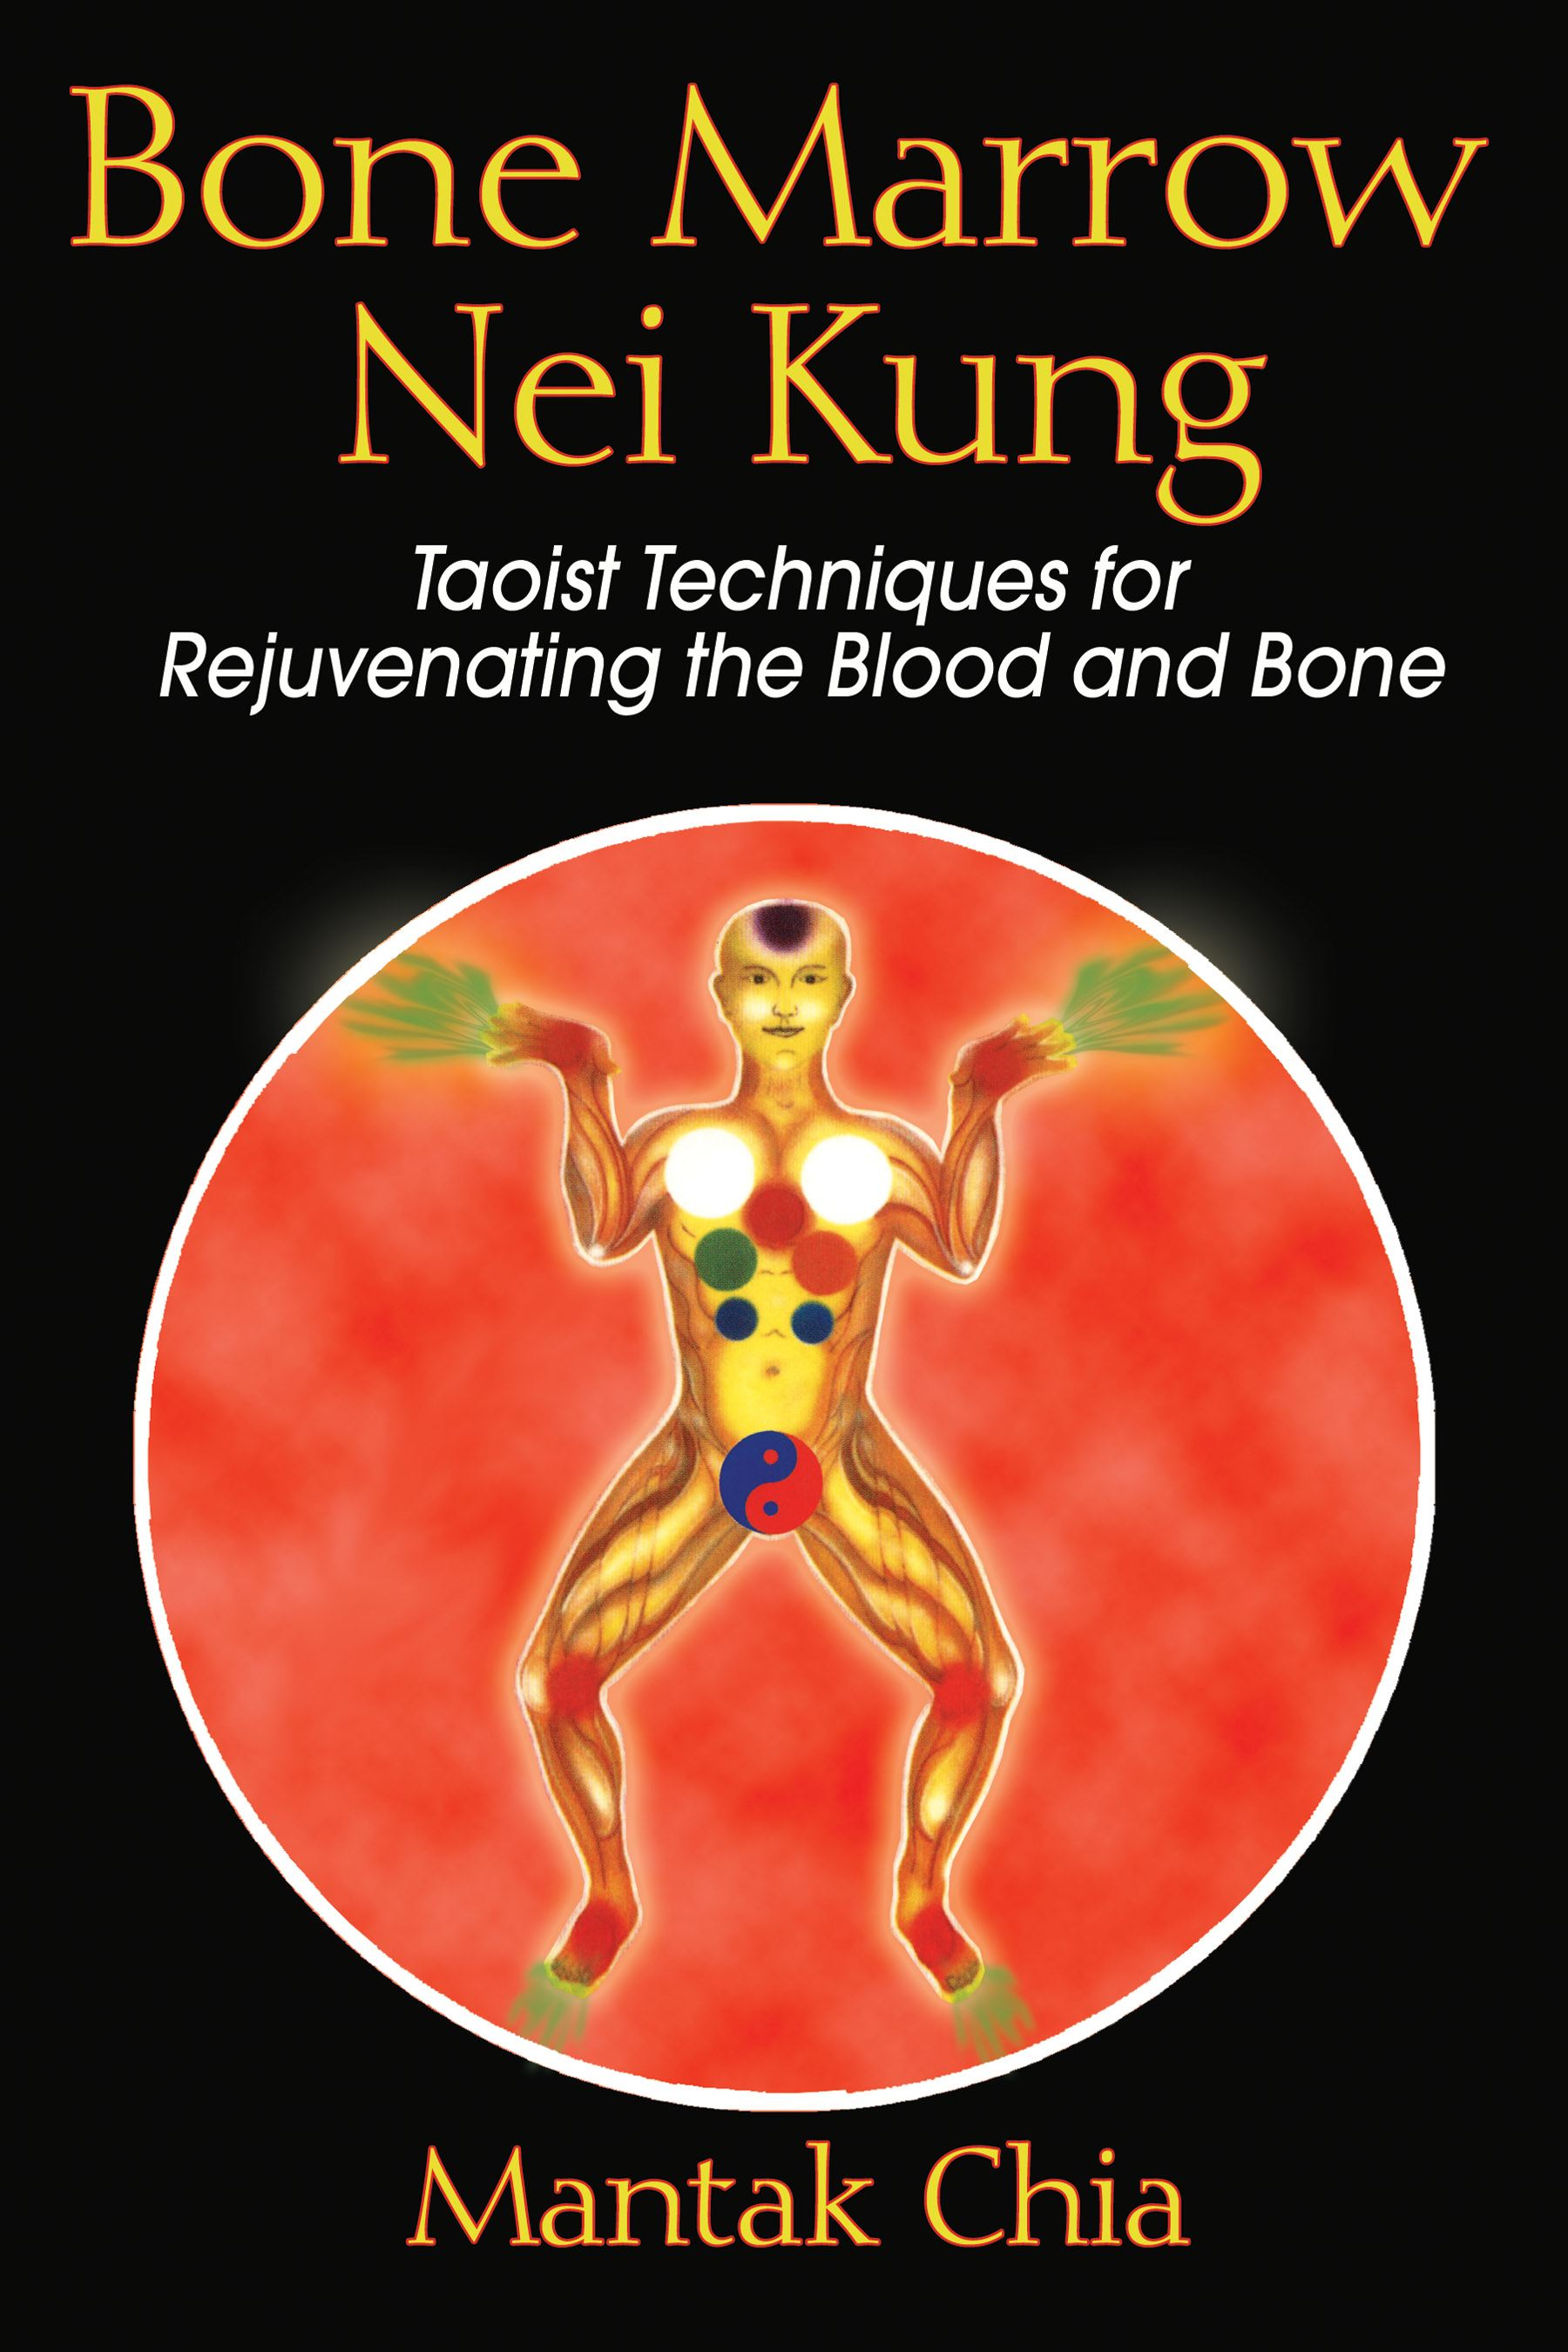 Bone Marrow Nei Kung | Book by Mantak Chia | Official